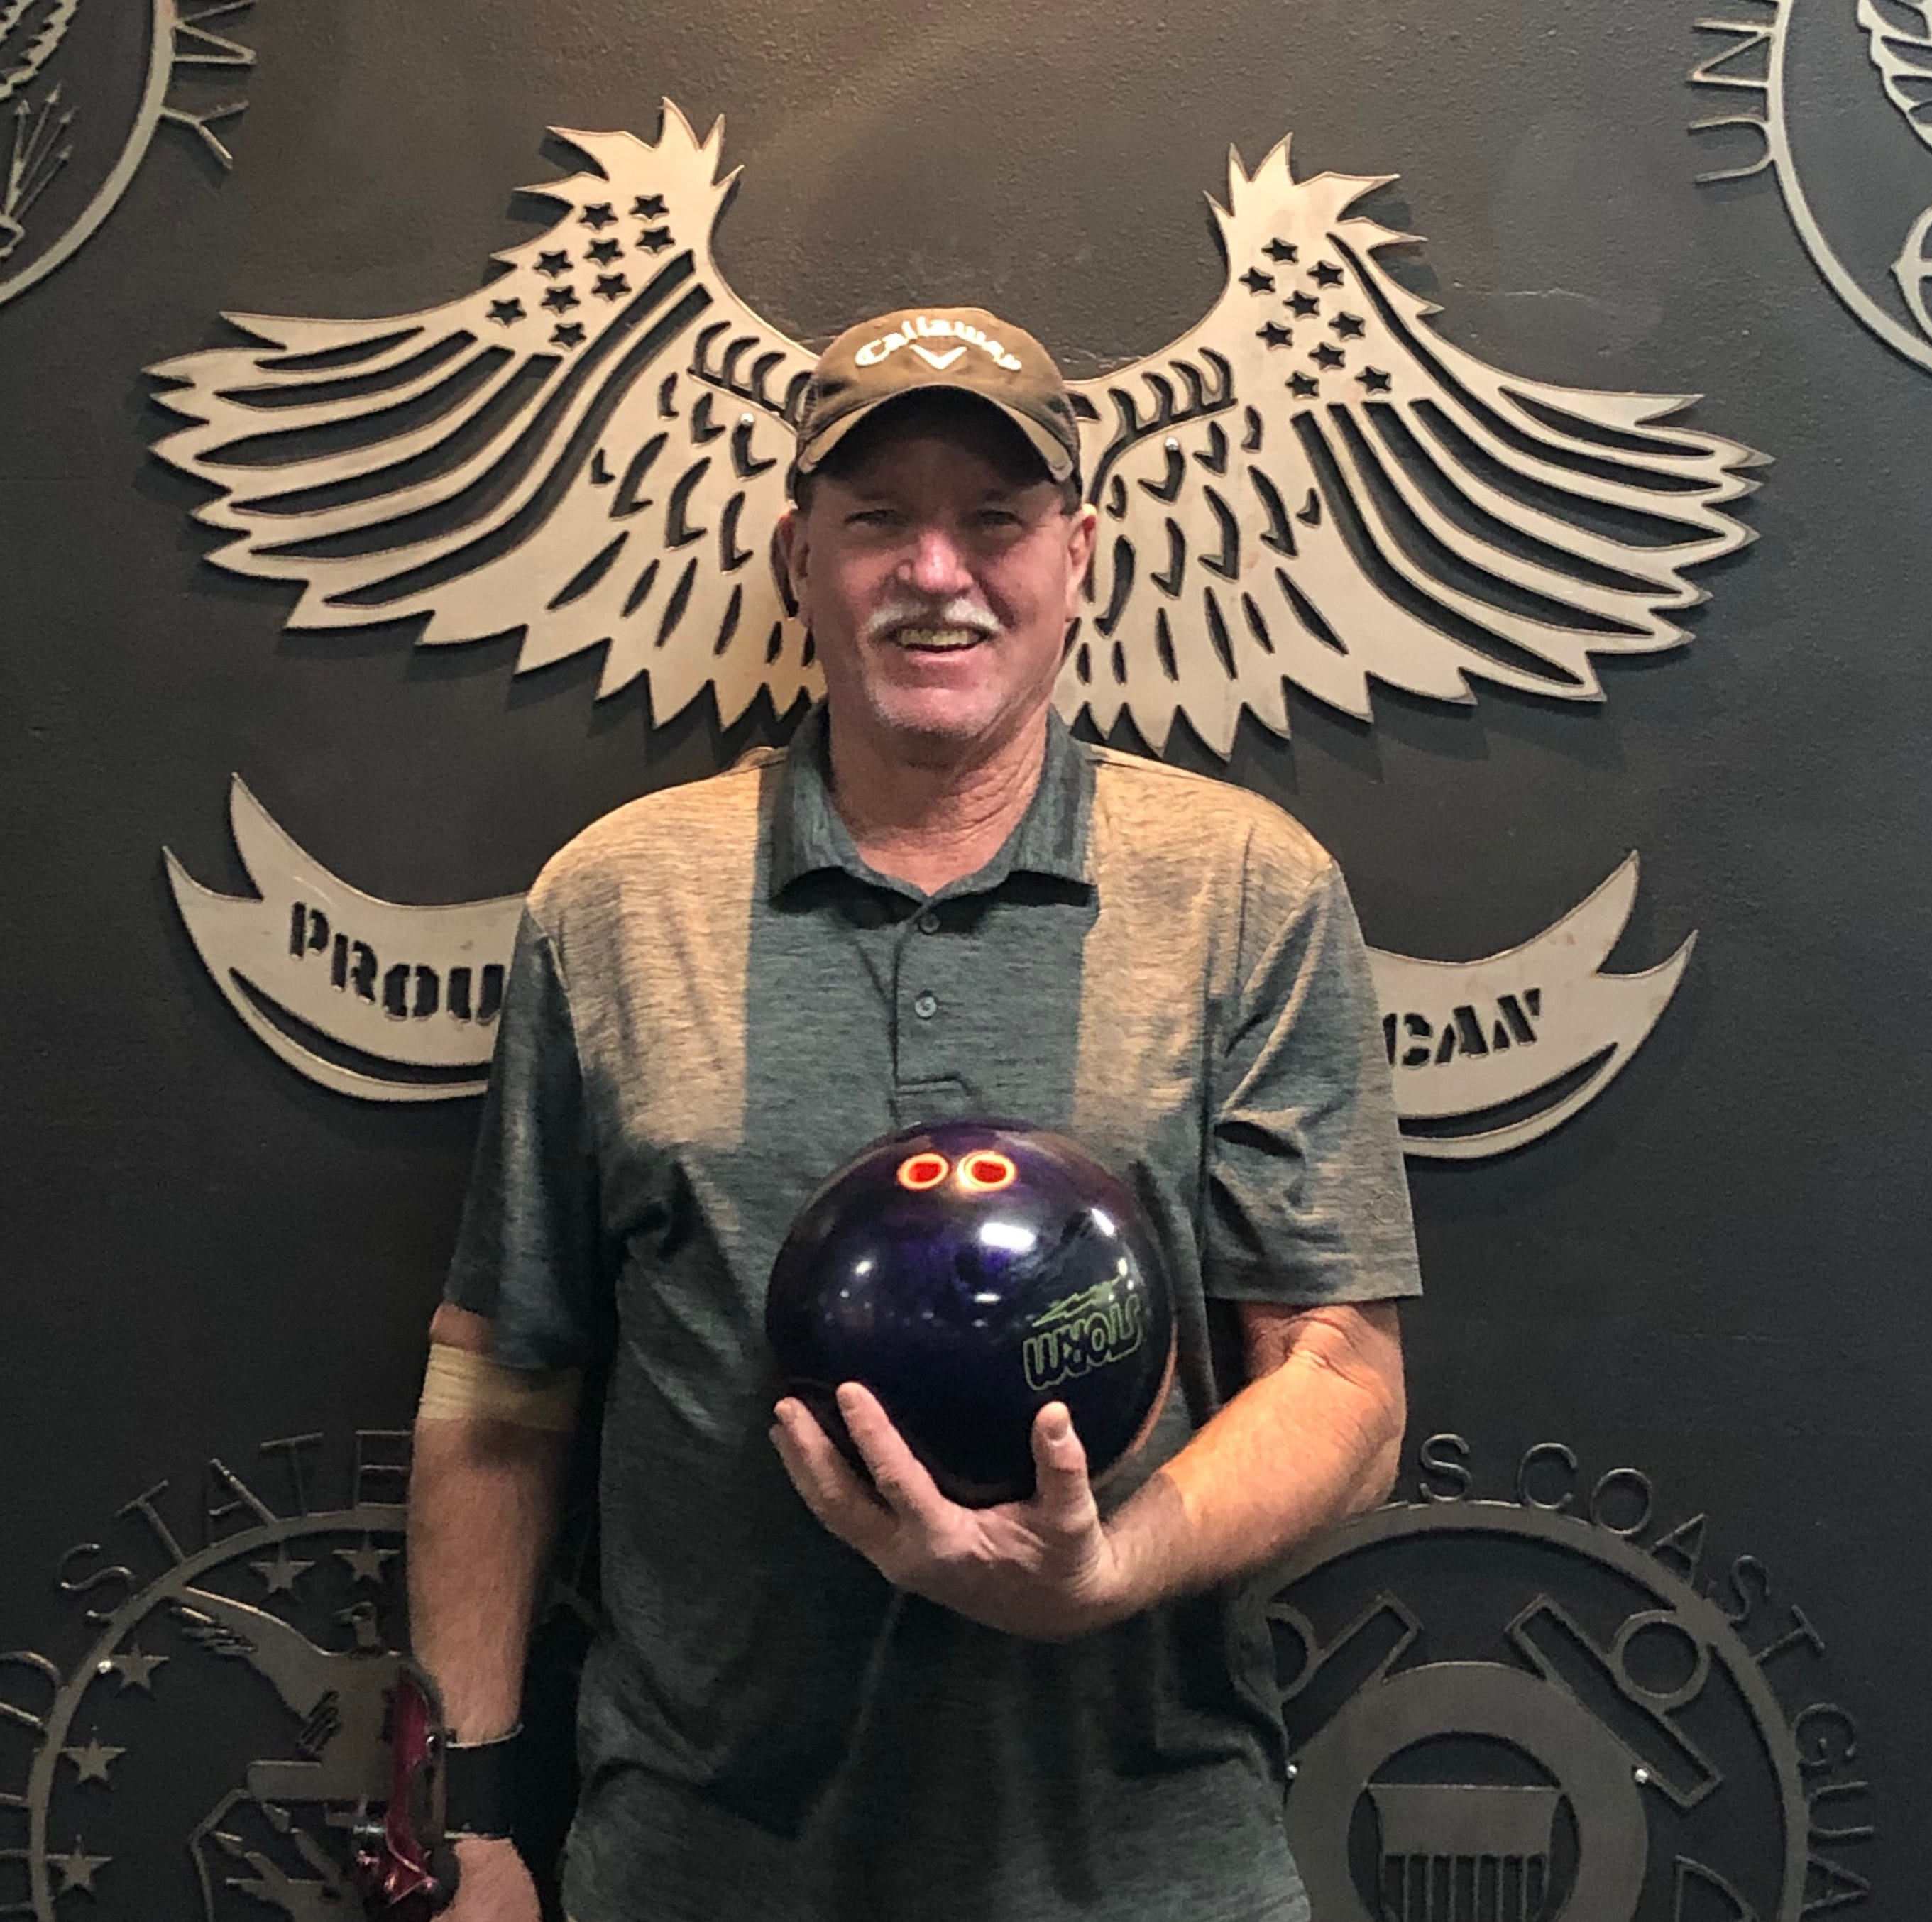 St. George bowler just misses 300 game, finishes with 792 series